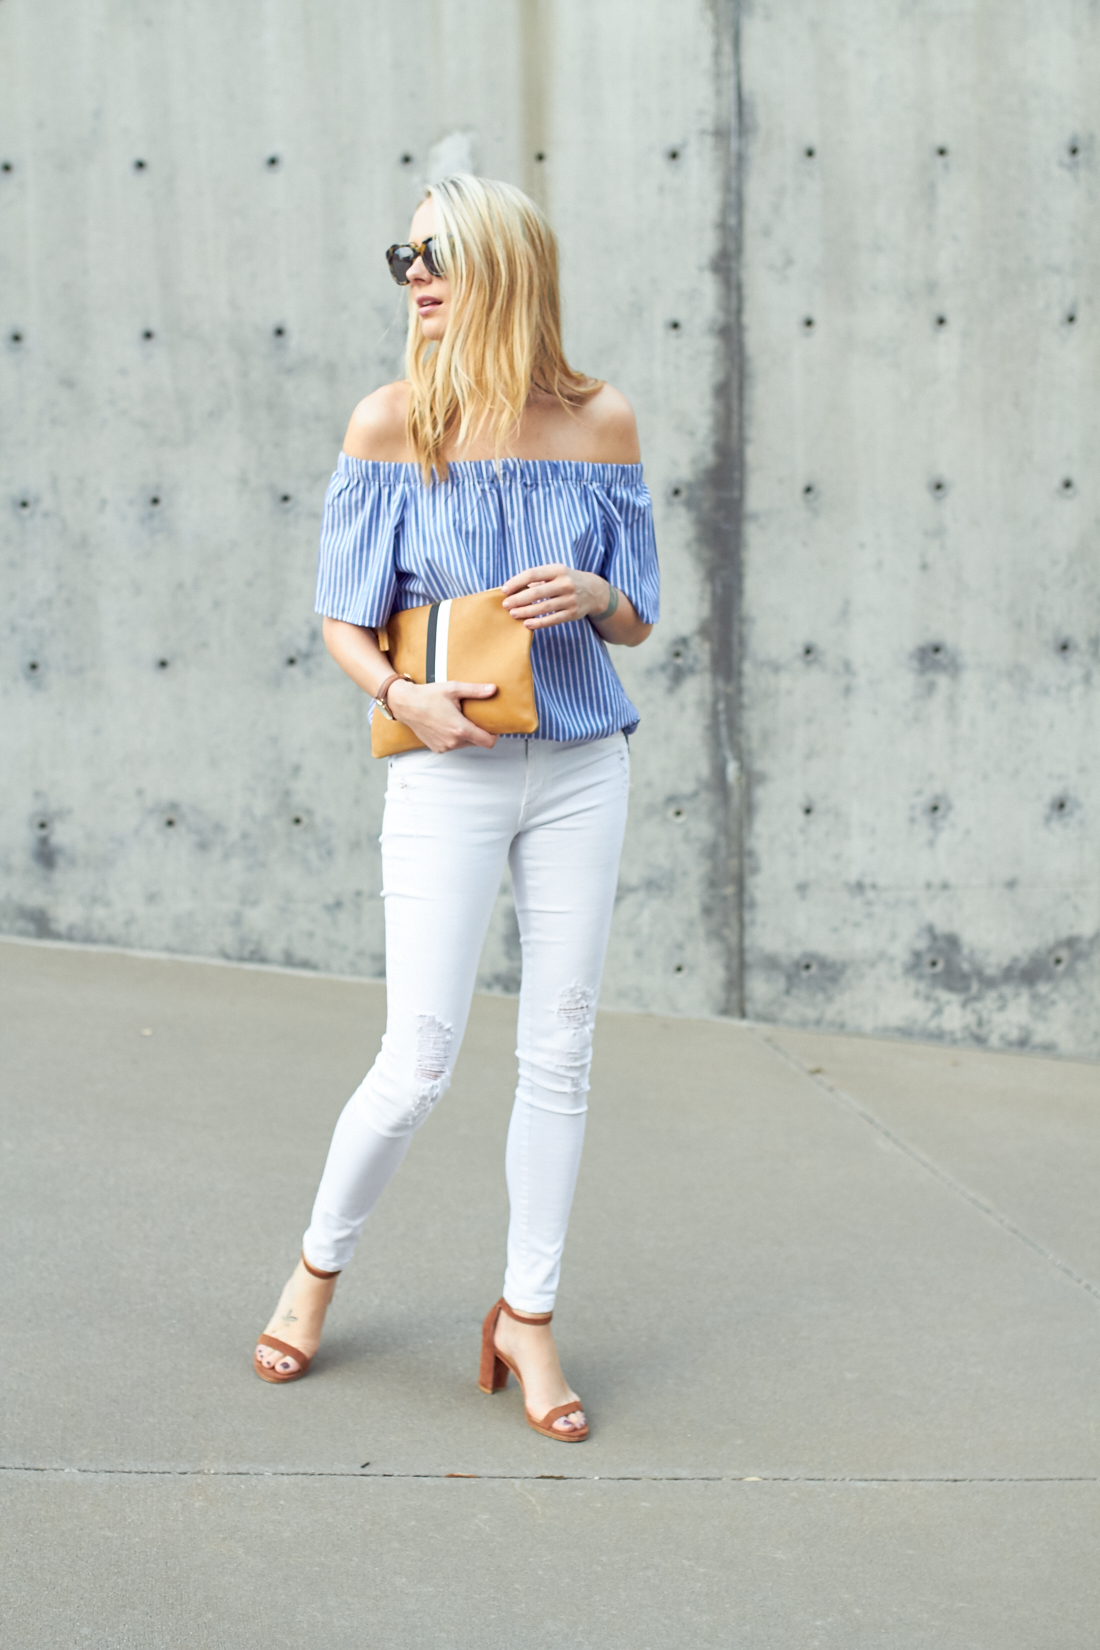 fashion-jackson-banana-republic-blue-stripe-off-the-shoulder-top-white-skinny-jeans-stuart-weitzman-nearly-nude-sandals-clare-v-clutch